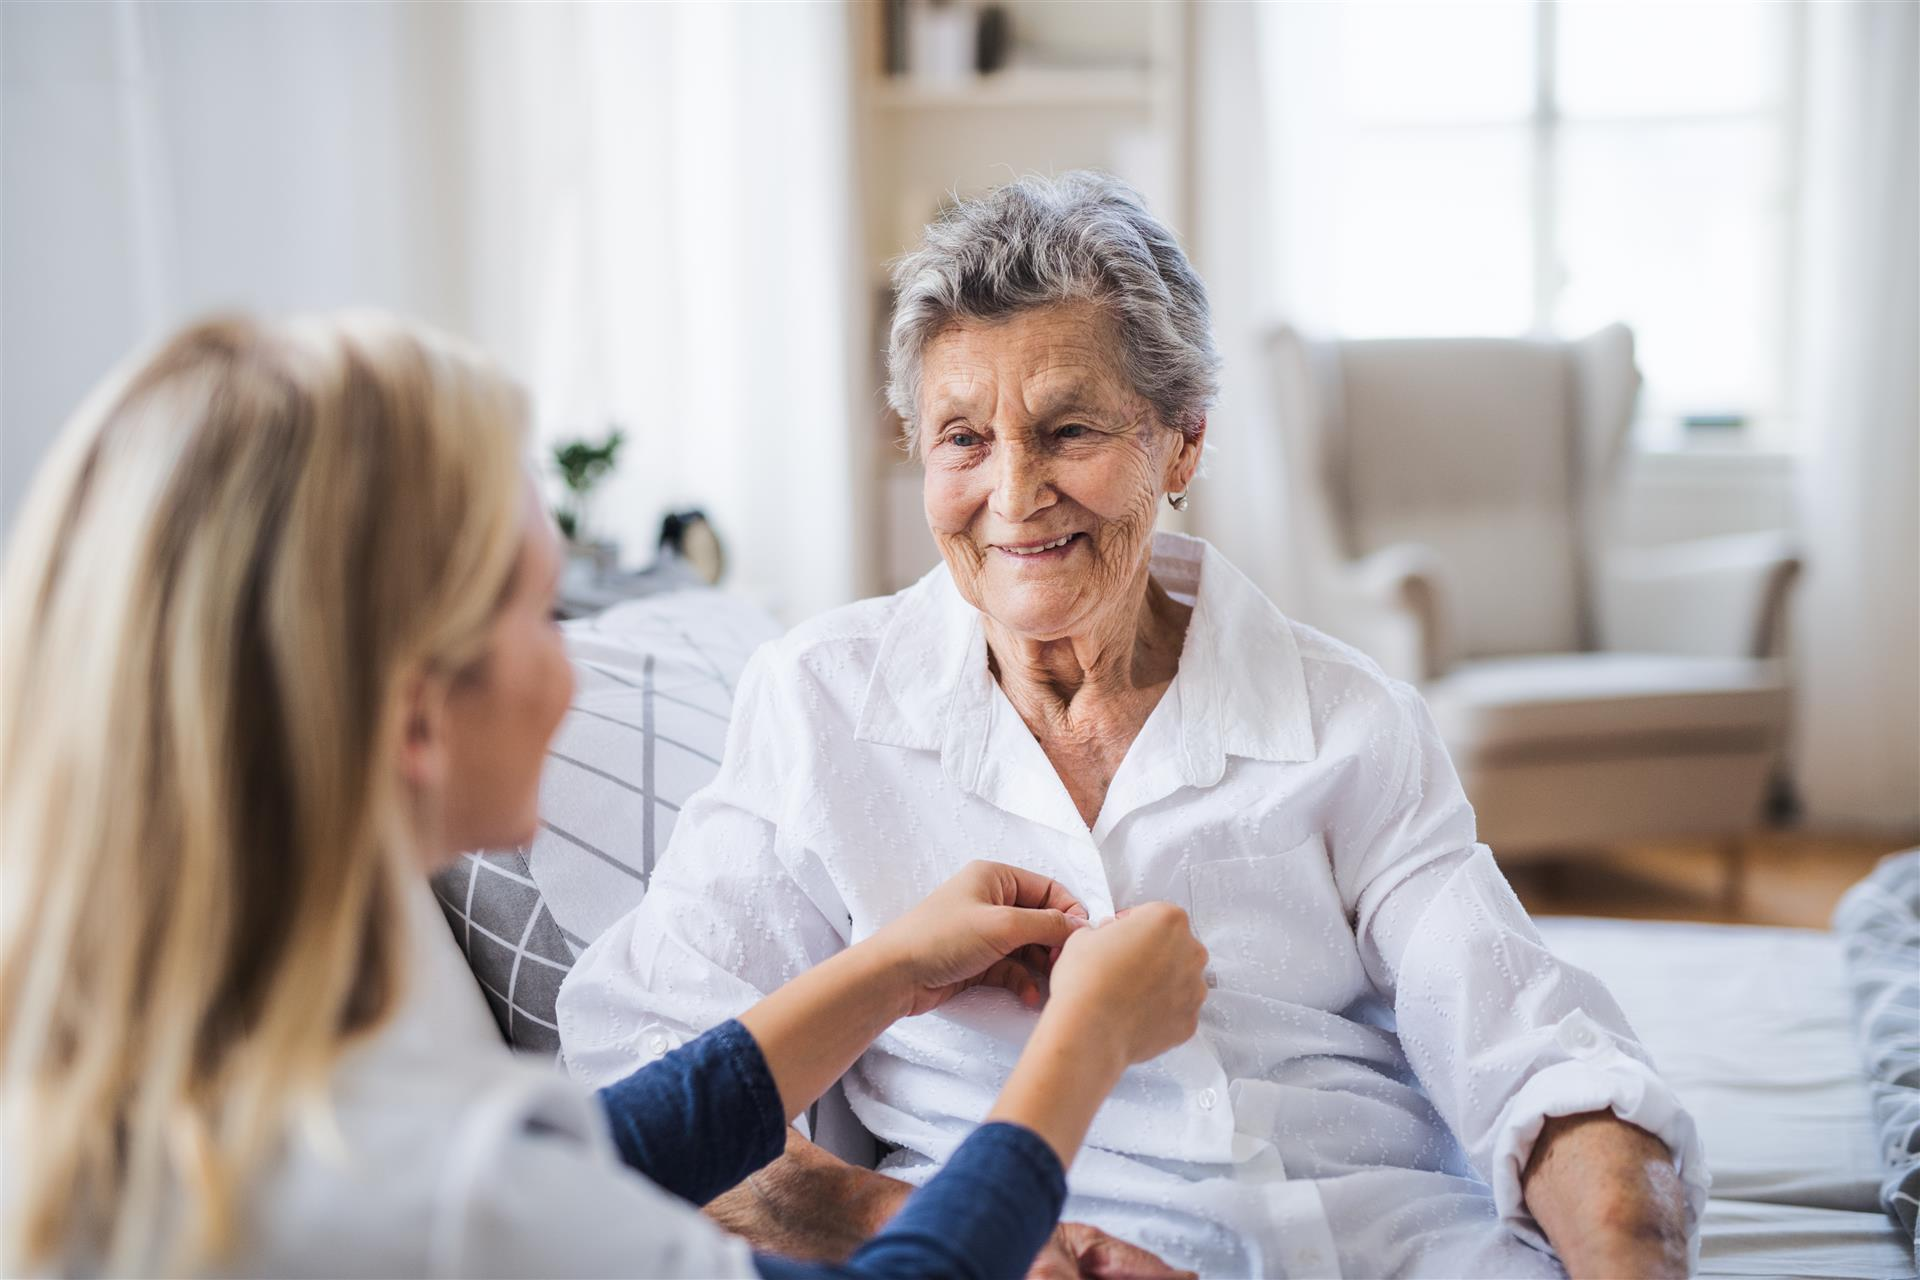 5 WAYS SENIORS IN FAITH-BASED ASSISTED LIVING COMMUNITIES CAN DEAL WITH STRESS